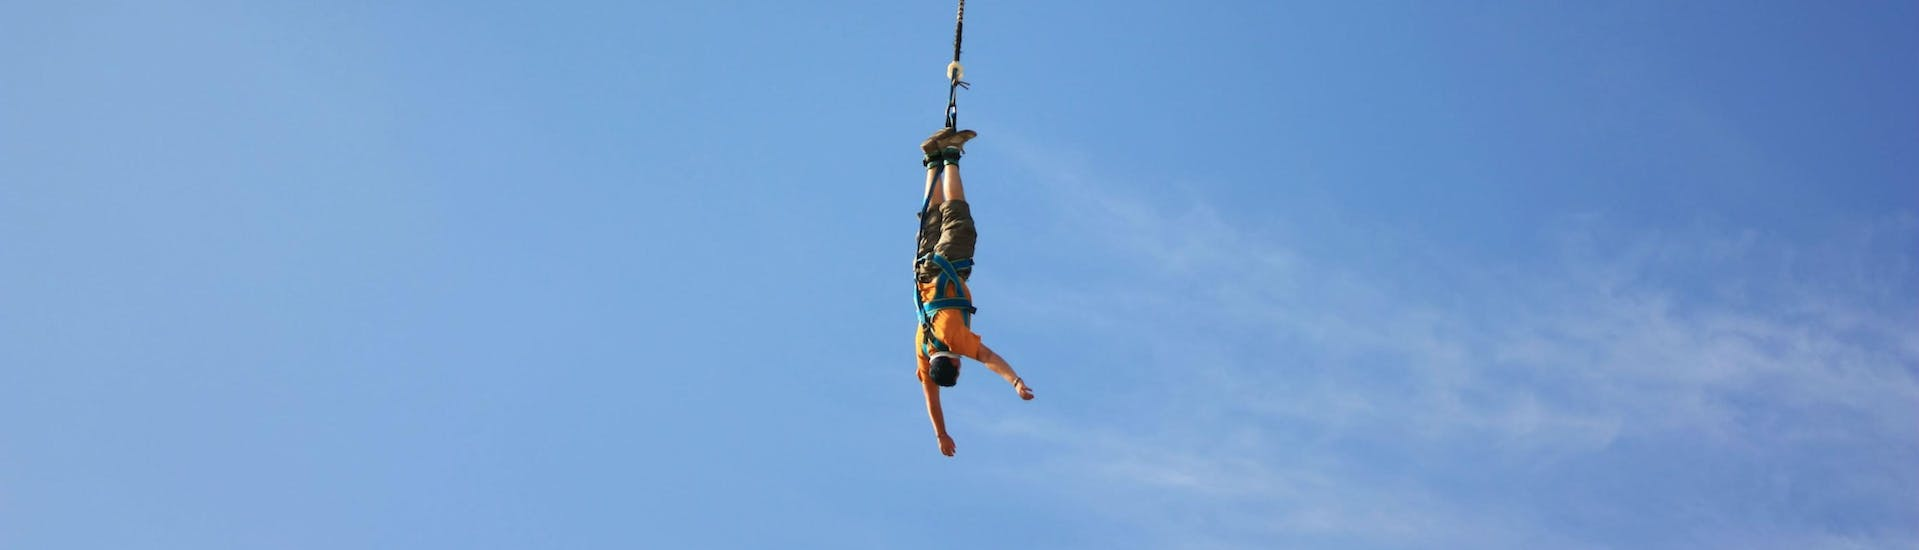 A bungee jumping enthusiast hangs head upside down after doing his Pendulum Jump from the Viaduc Lavilledieu (25m) with Torrents & Granit.